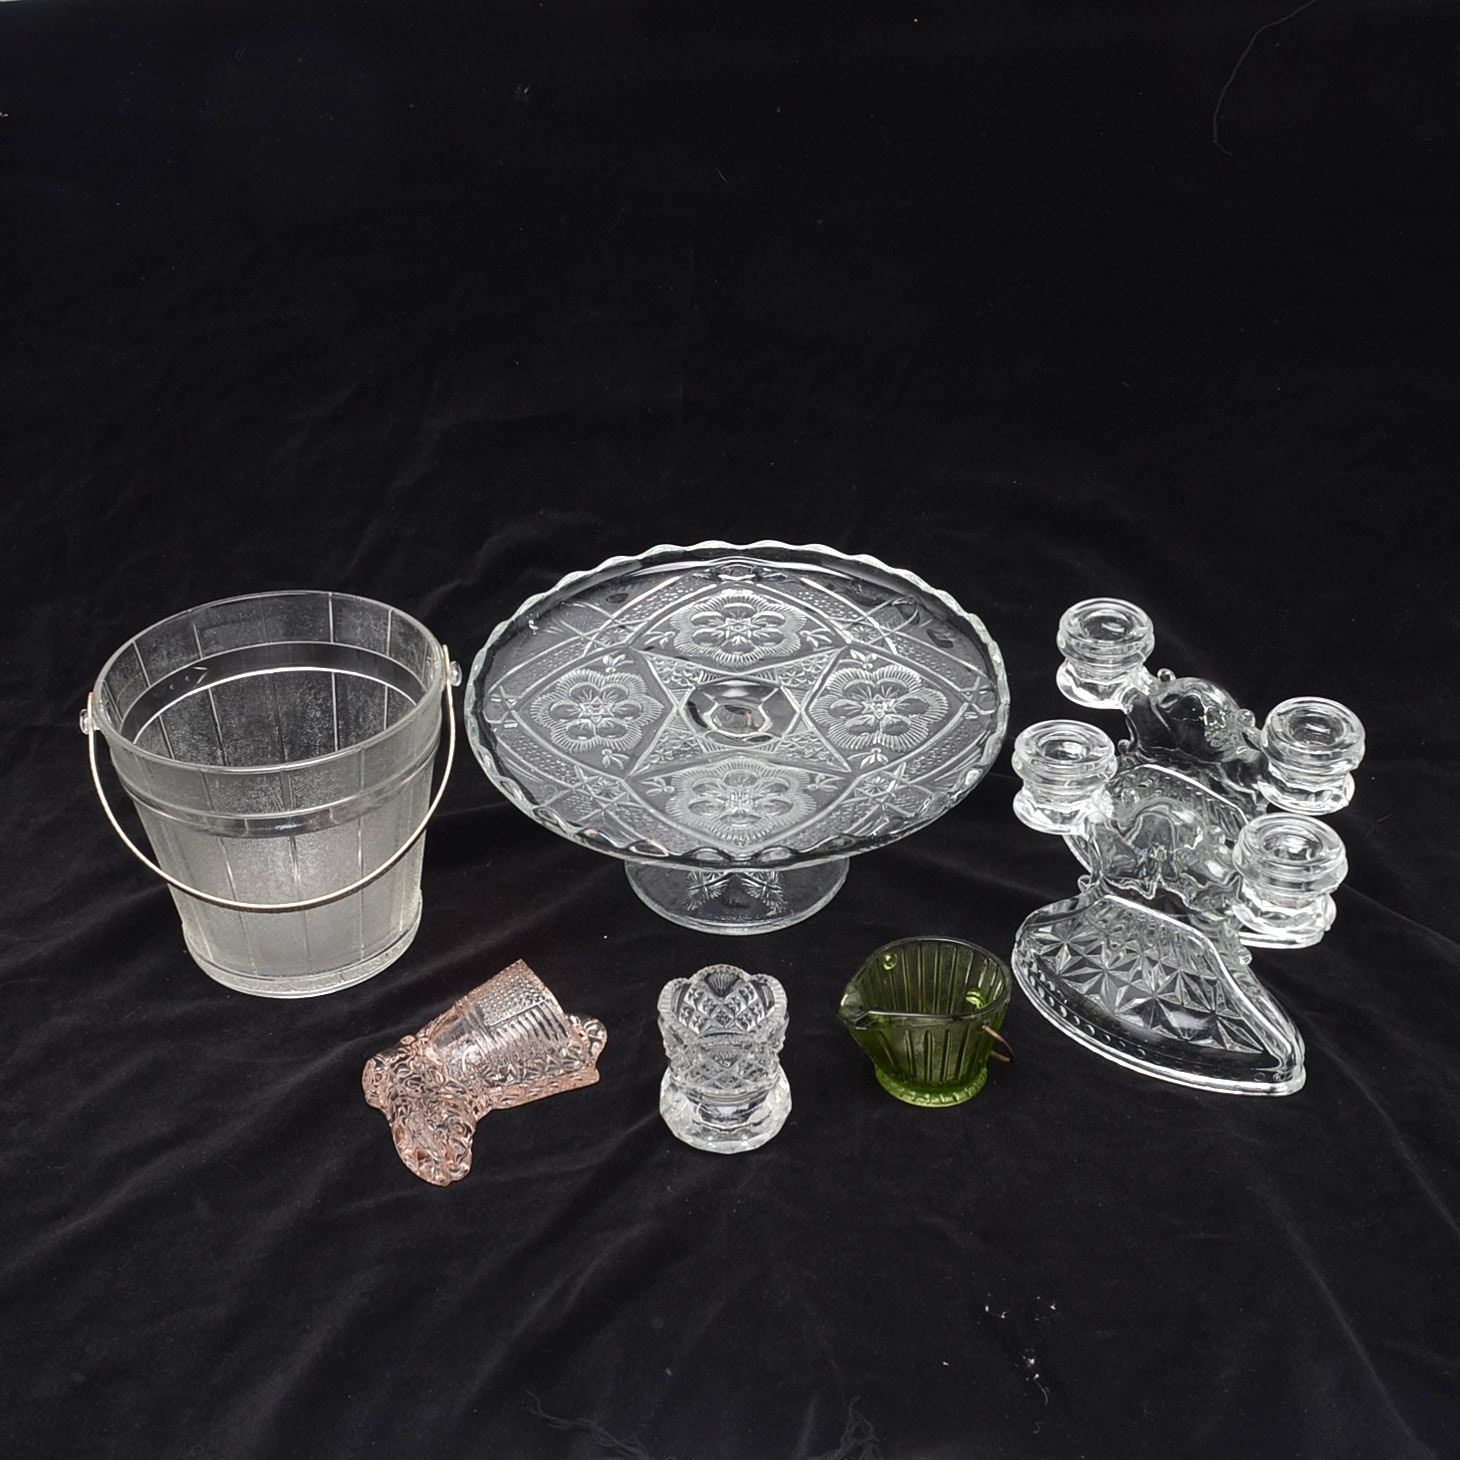 Depression Glass Candlesticks and Vintage Glass Decor